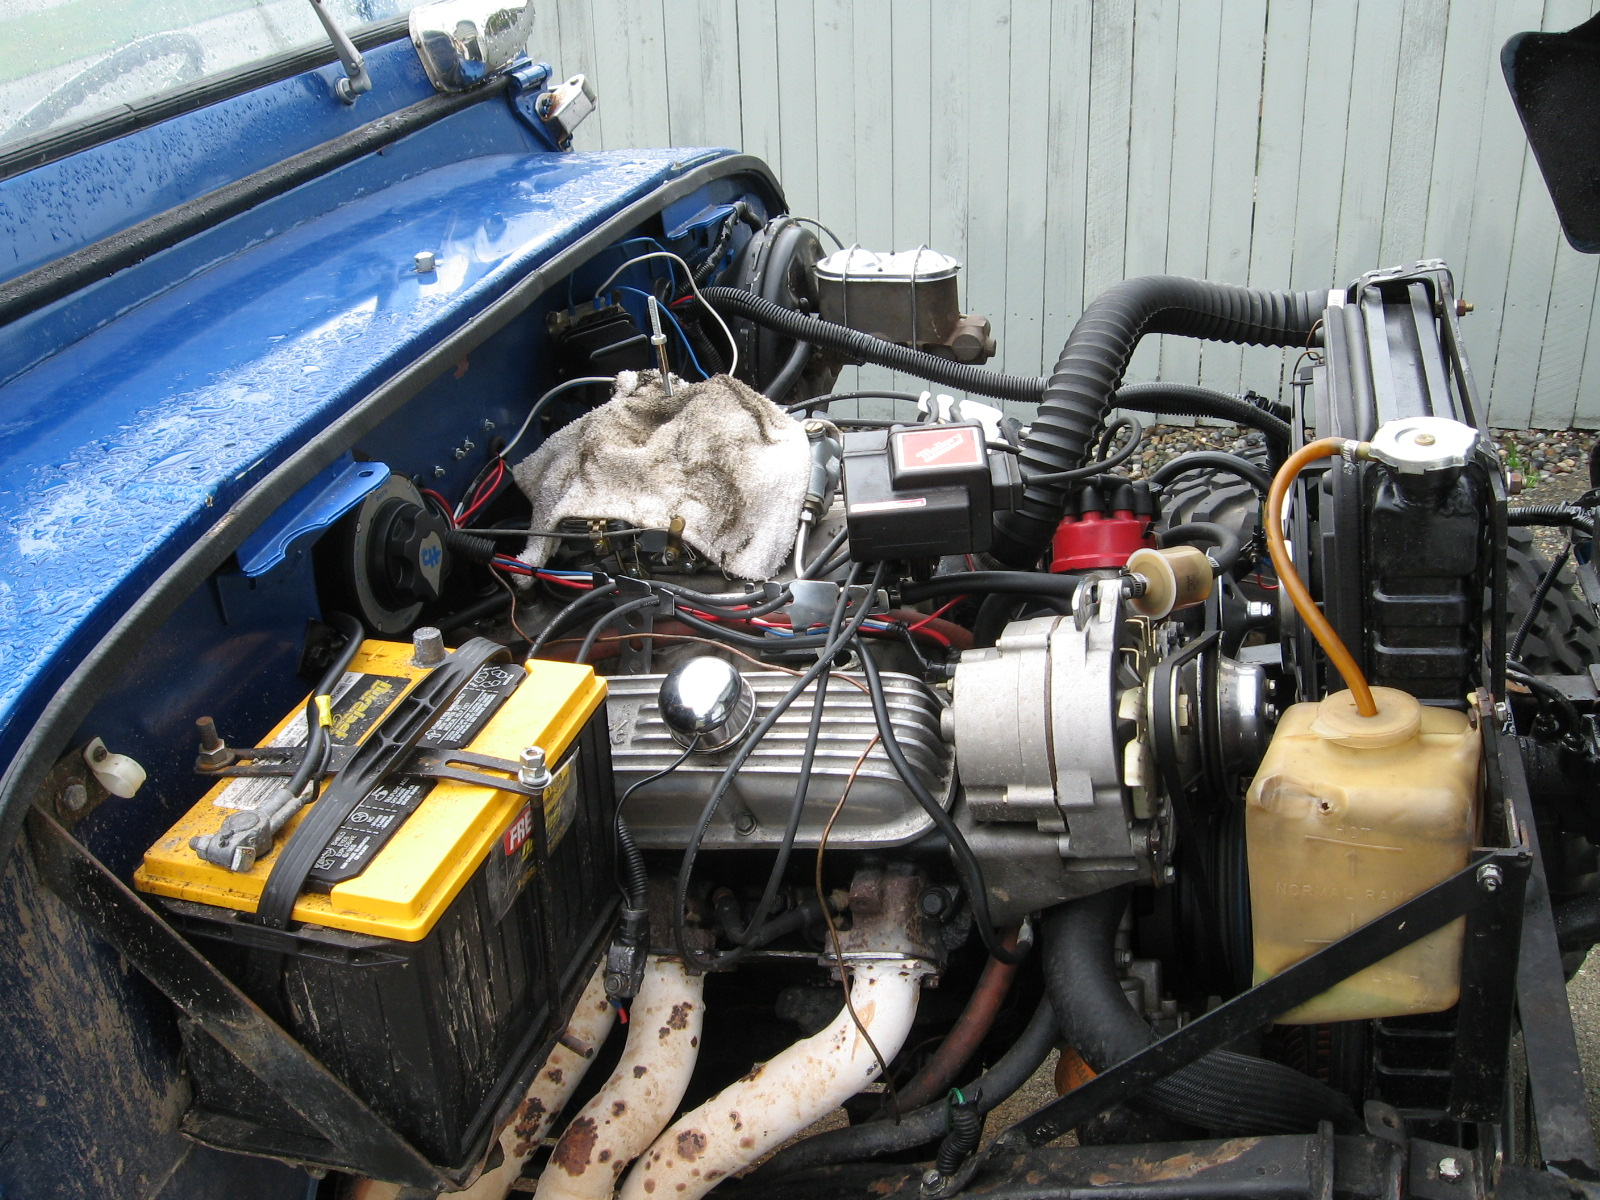 4 24 16trl further Rat Rod Trucks For Sale On Craigslist besides 1960 Oldsmobile Wiring Diagram also 1961 Ford Galaxie Fuse Box besides Vintage Guitar Wiring. on garage wiring diagrams 1960